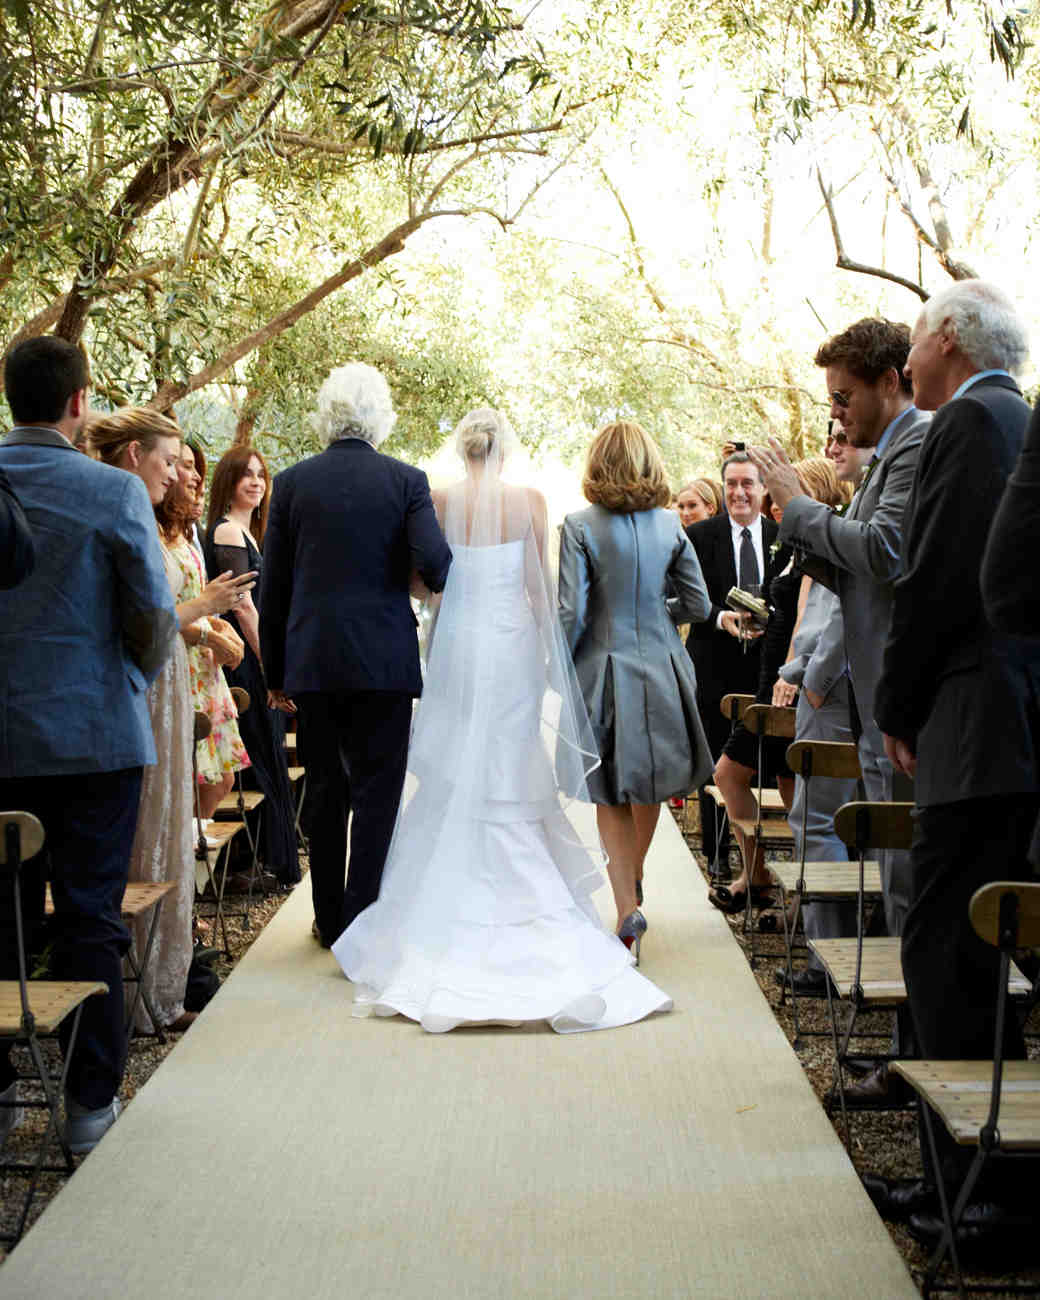 Bride S Father Died Before Her Wedding But Her Brother S: A Formal Wedding At Home In California